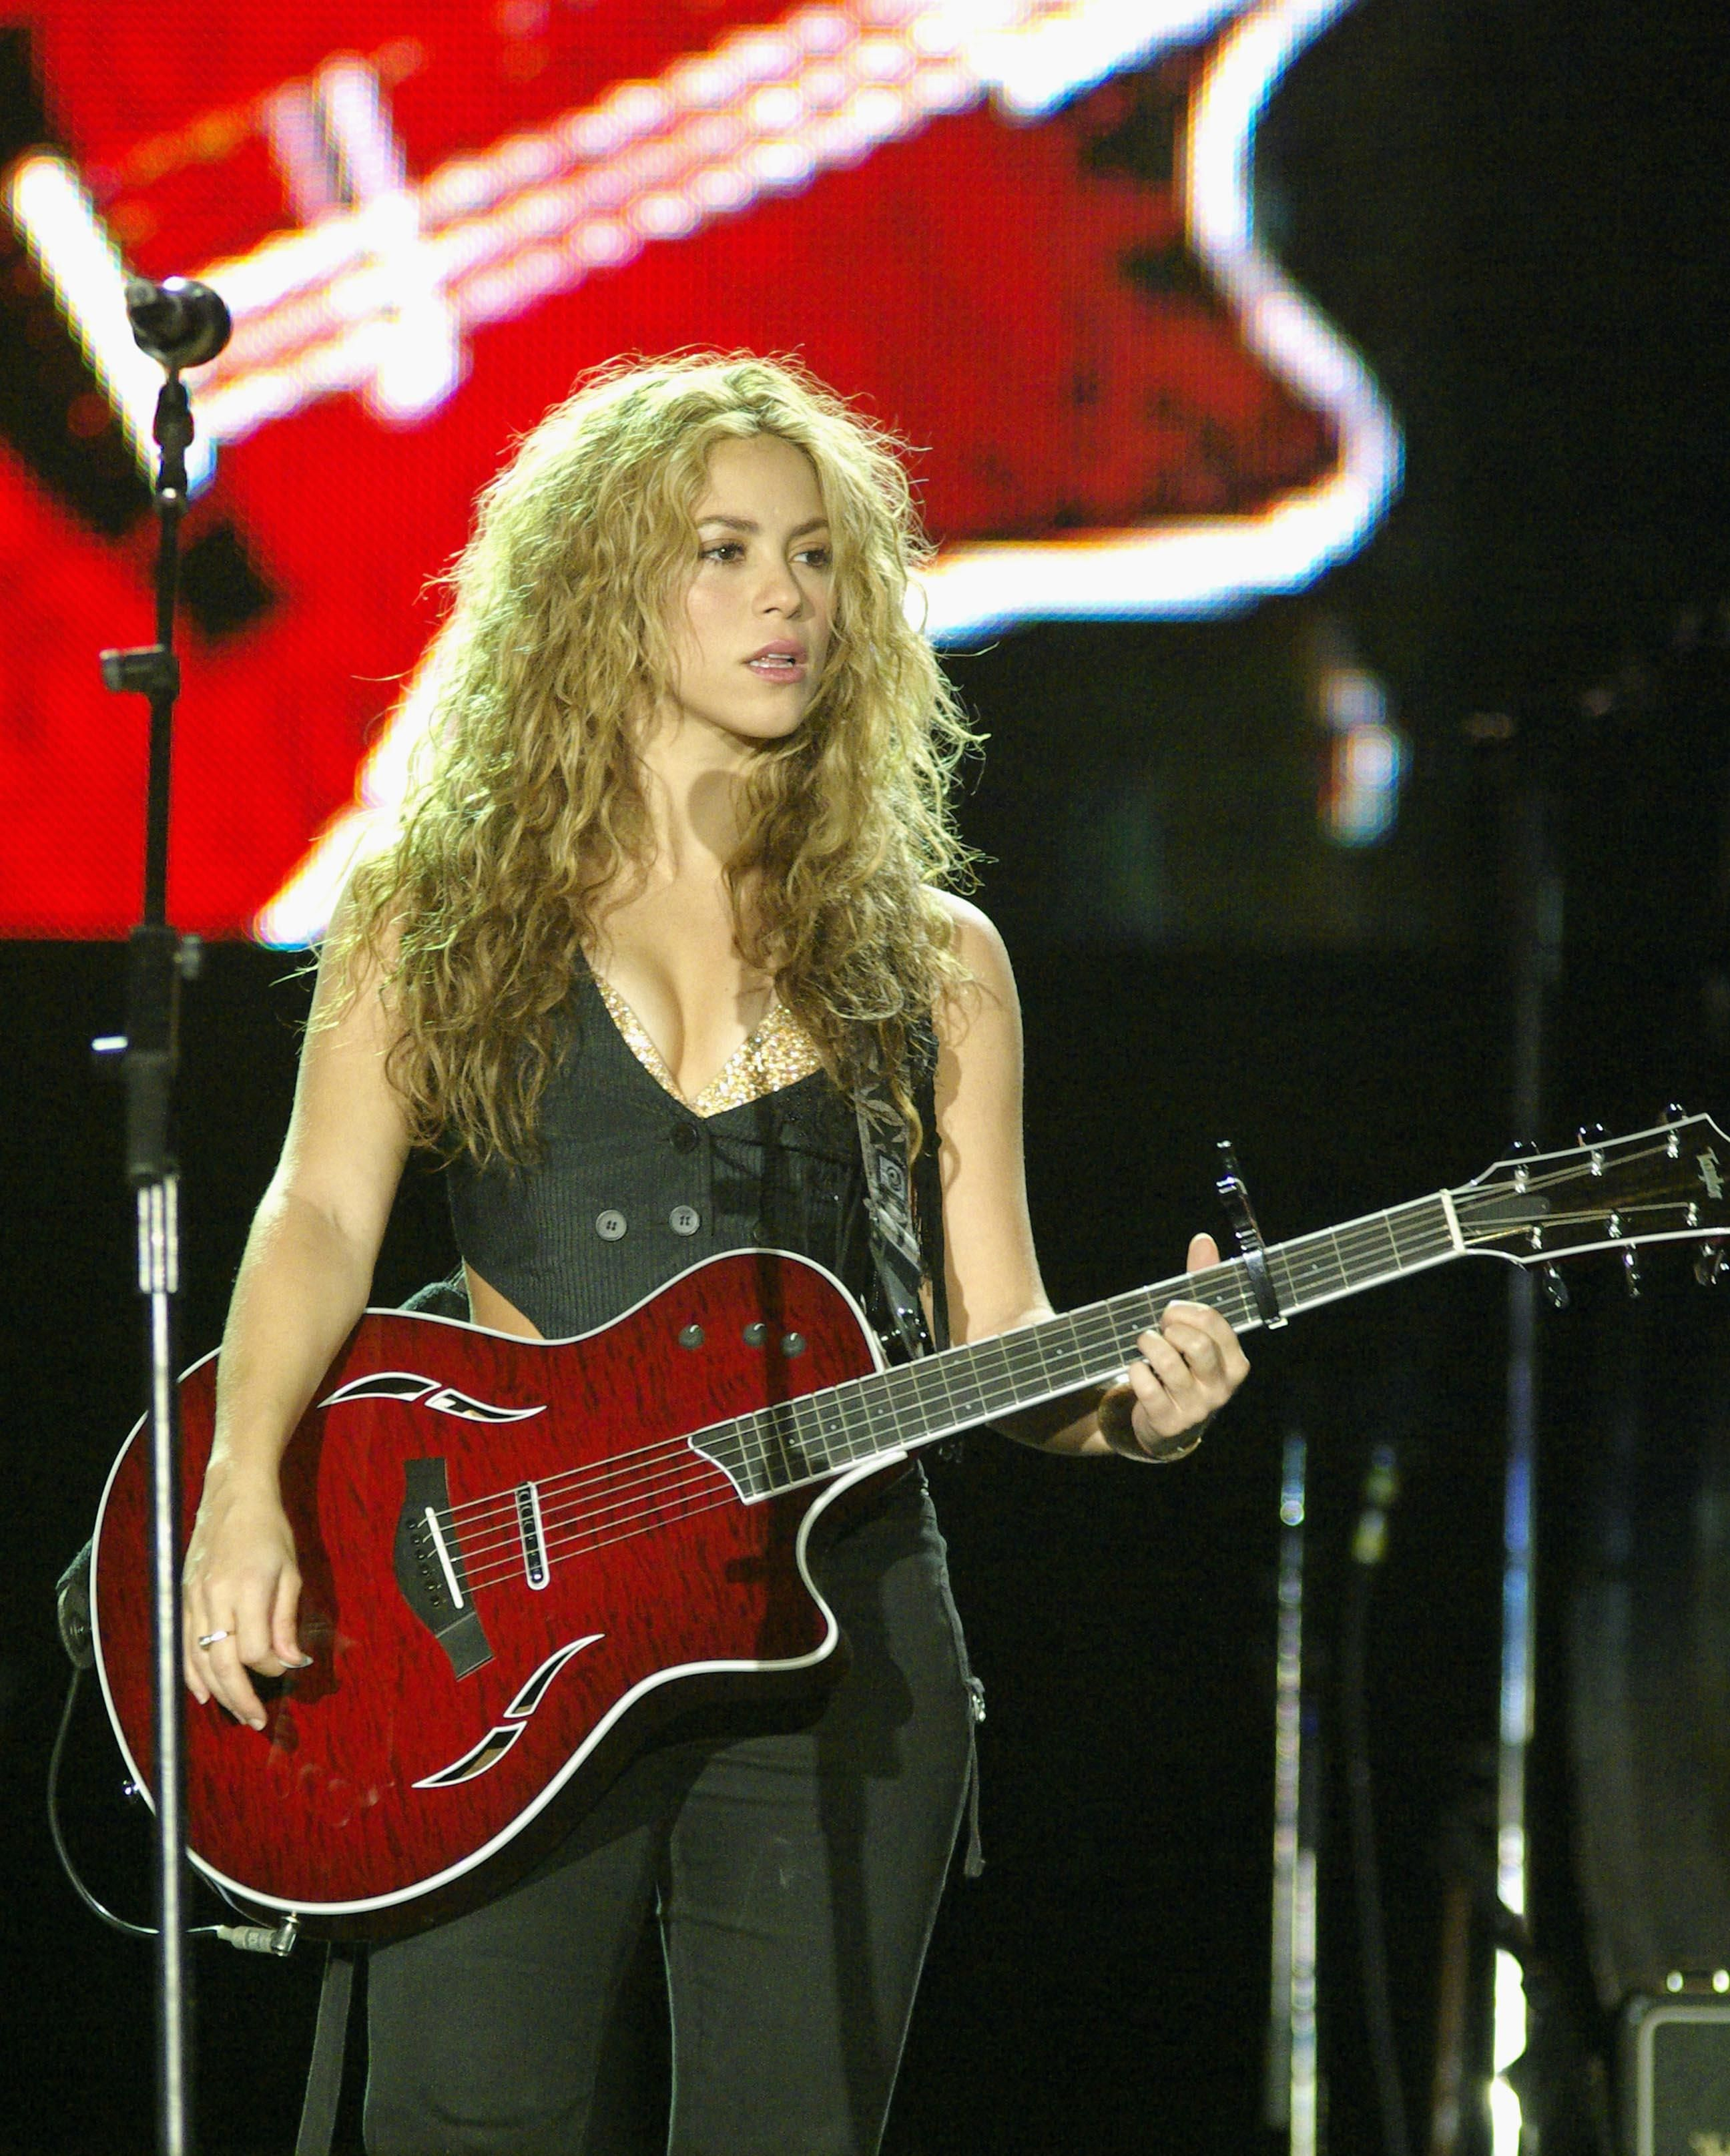 """In this life, to earn your place you have to fight for it"" Happy Birthday to #Shakira who turns 38 today! <3 www.uberchord.com"